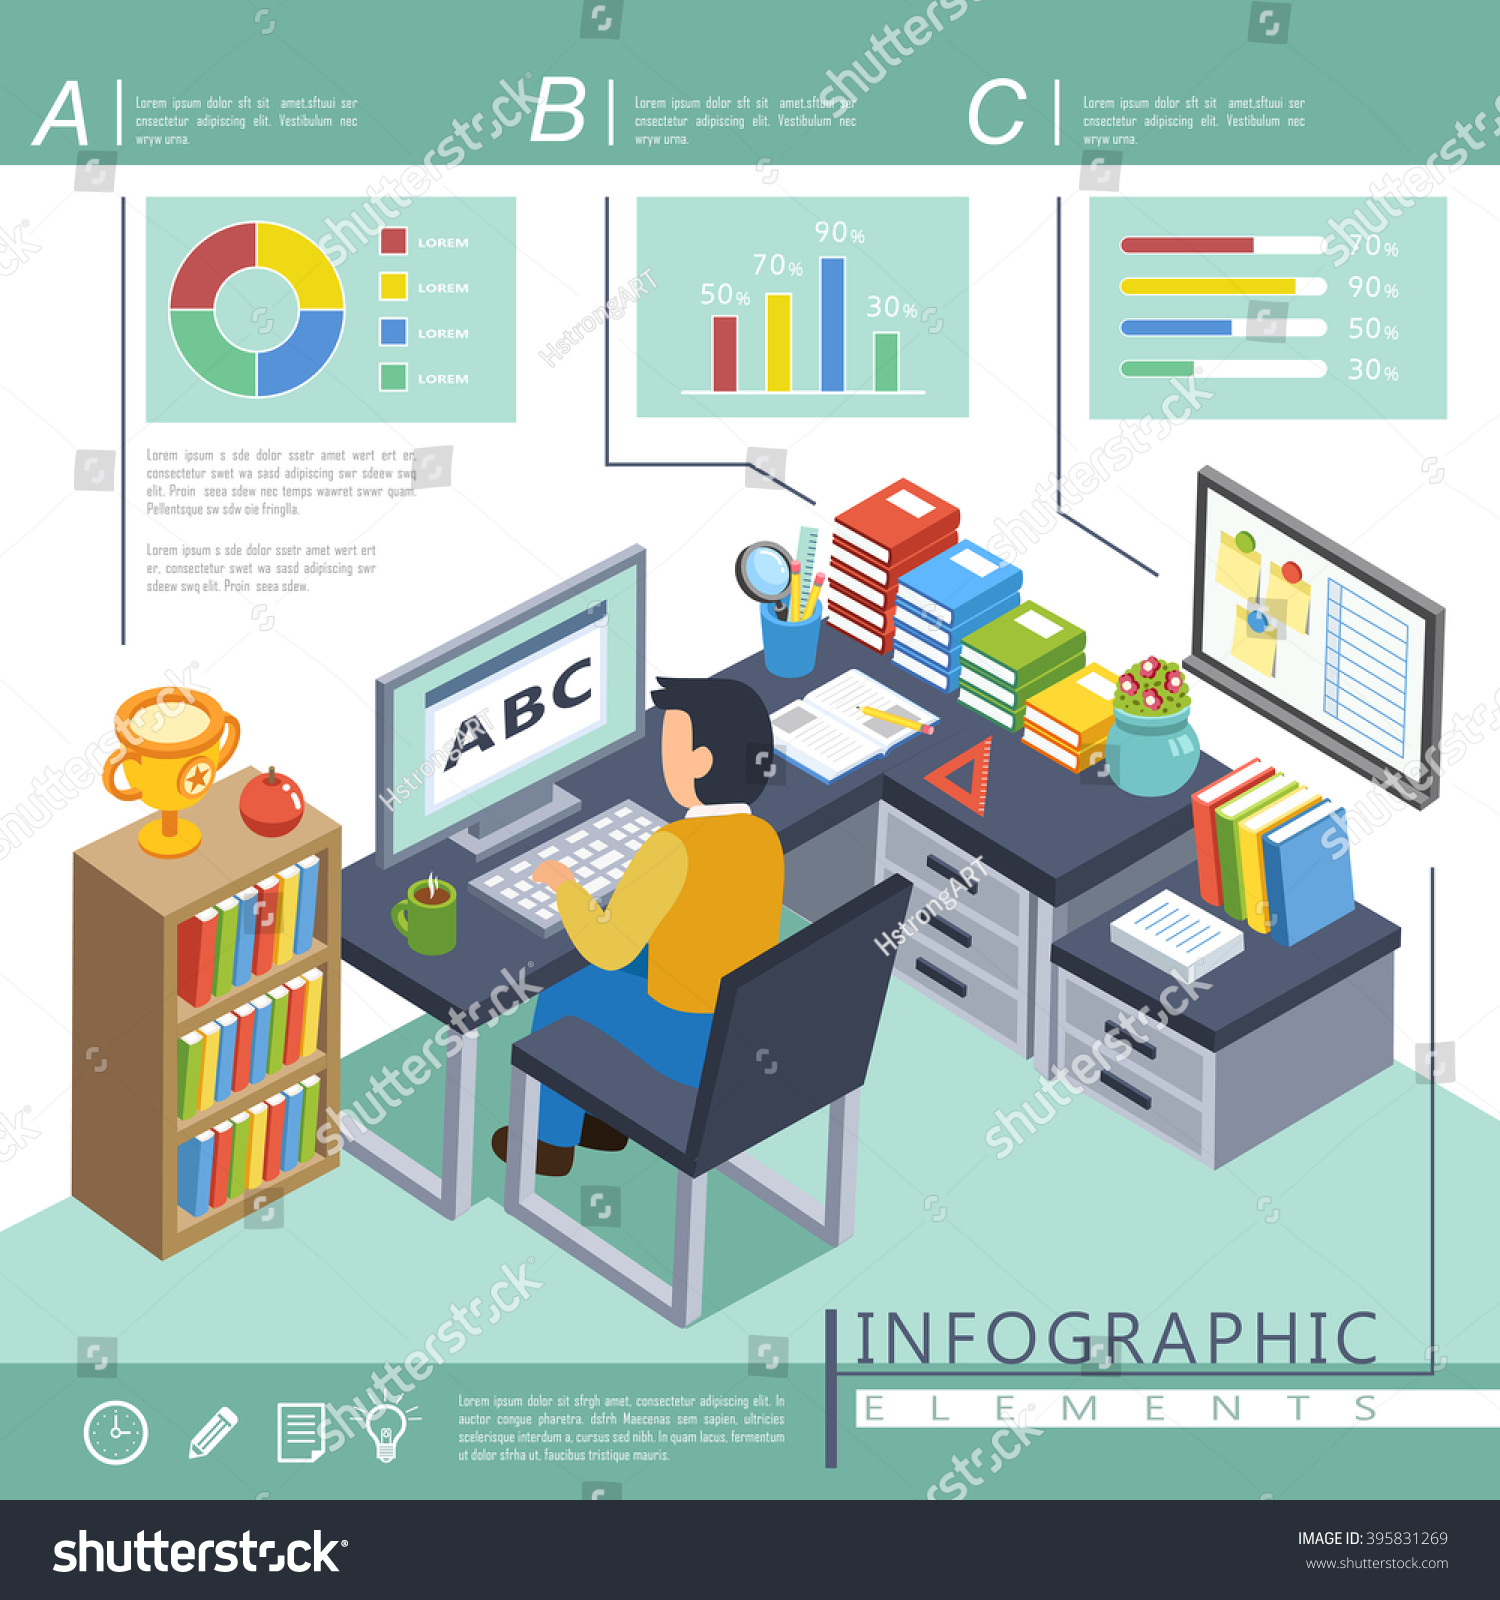 Online Education Infographic Template In 3d Isometric Flat Design